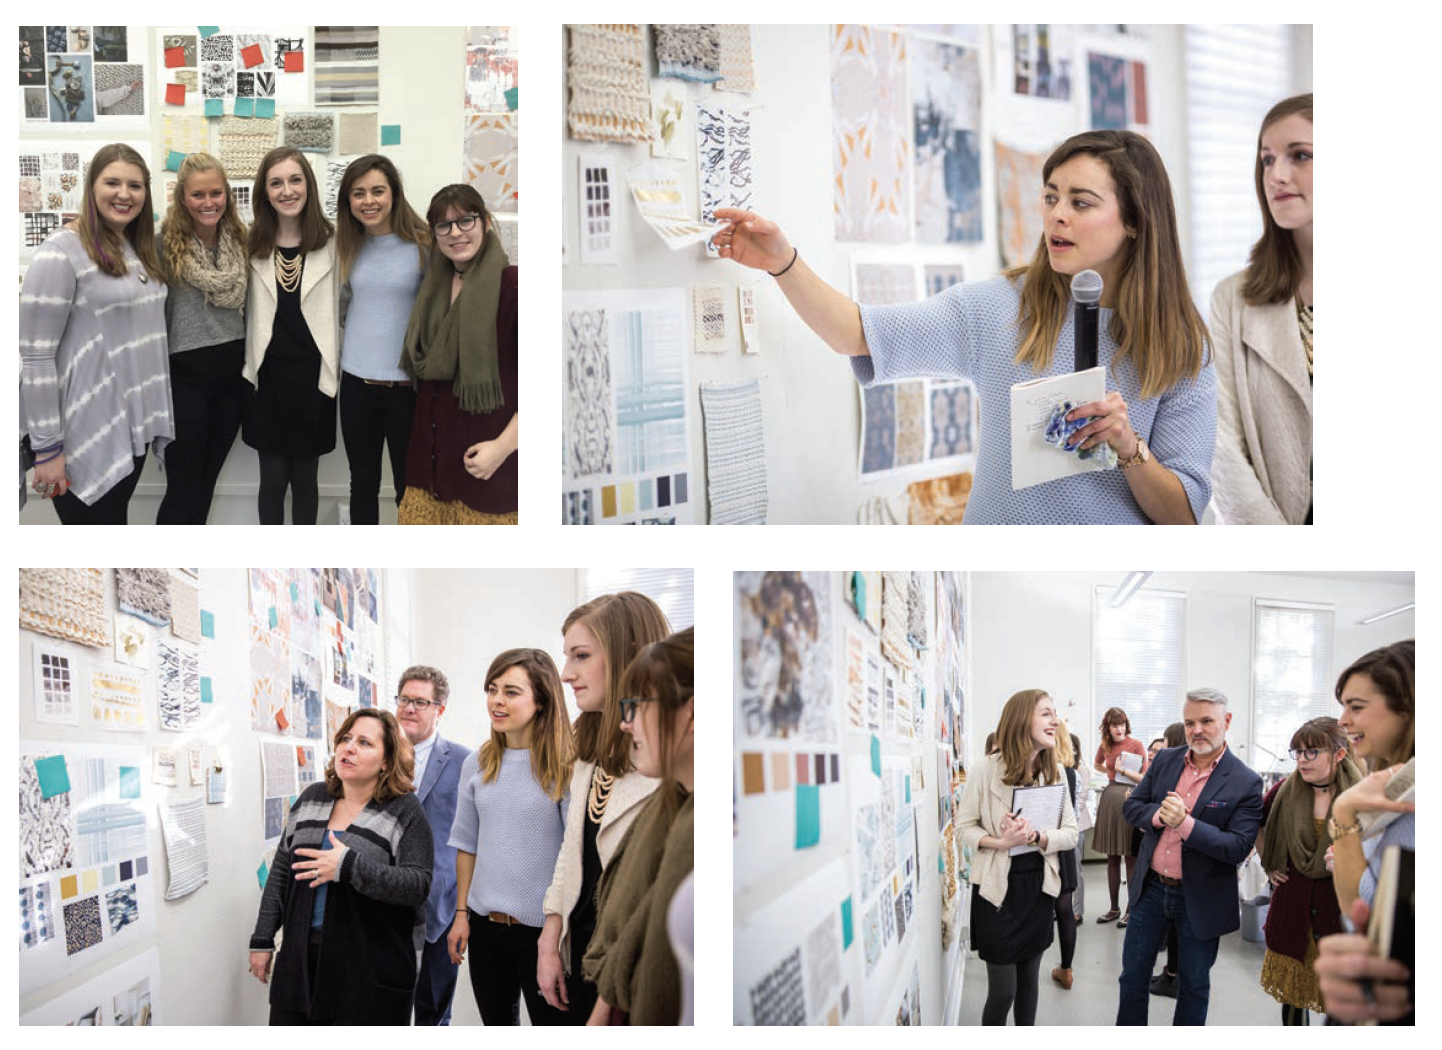 Design Incubation with SCAD